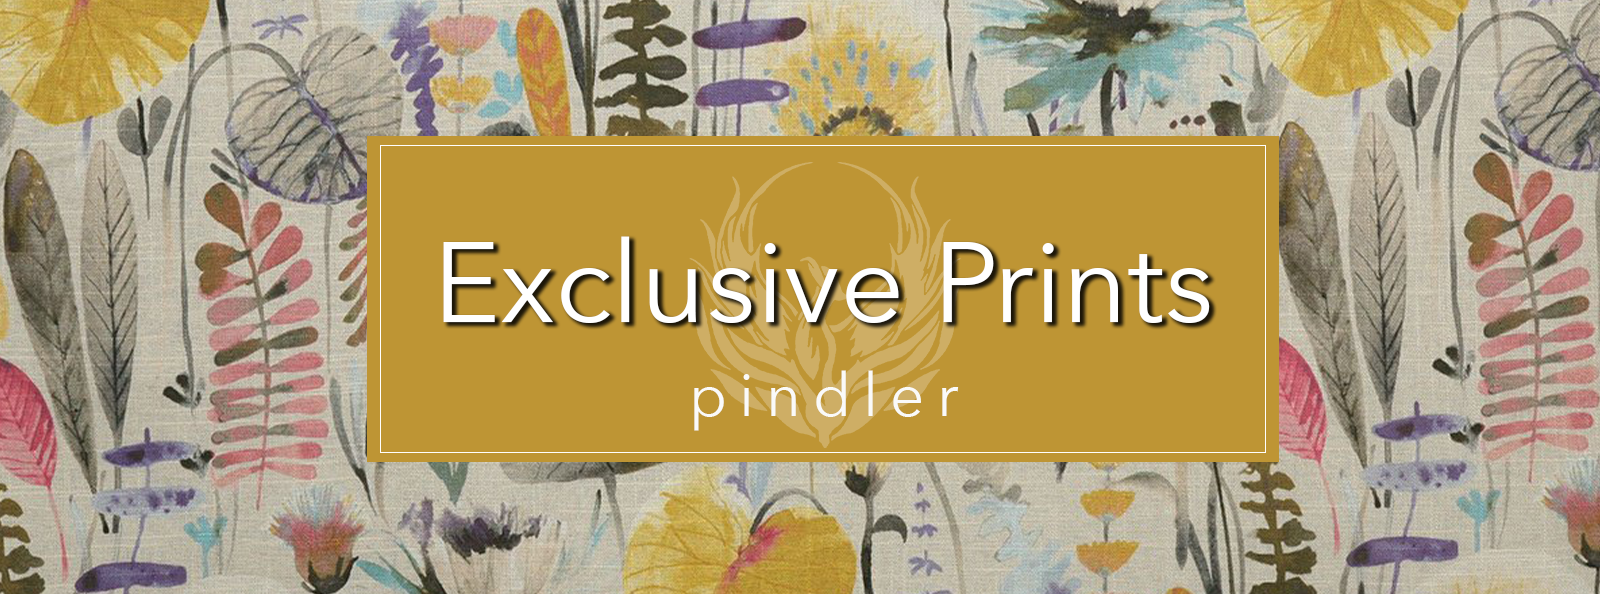 Exclusive Prints Collection by Pindler